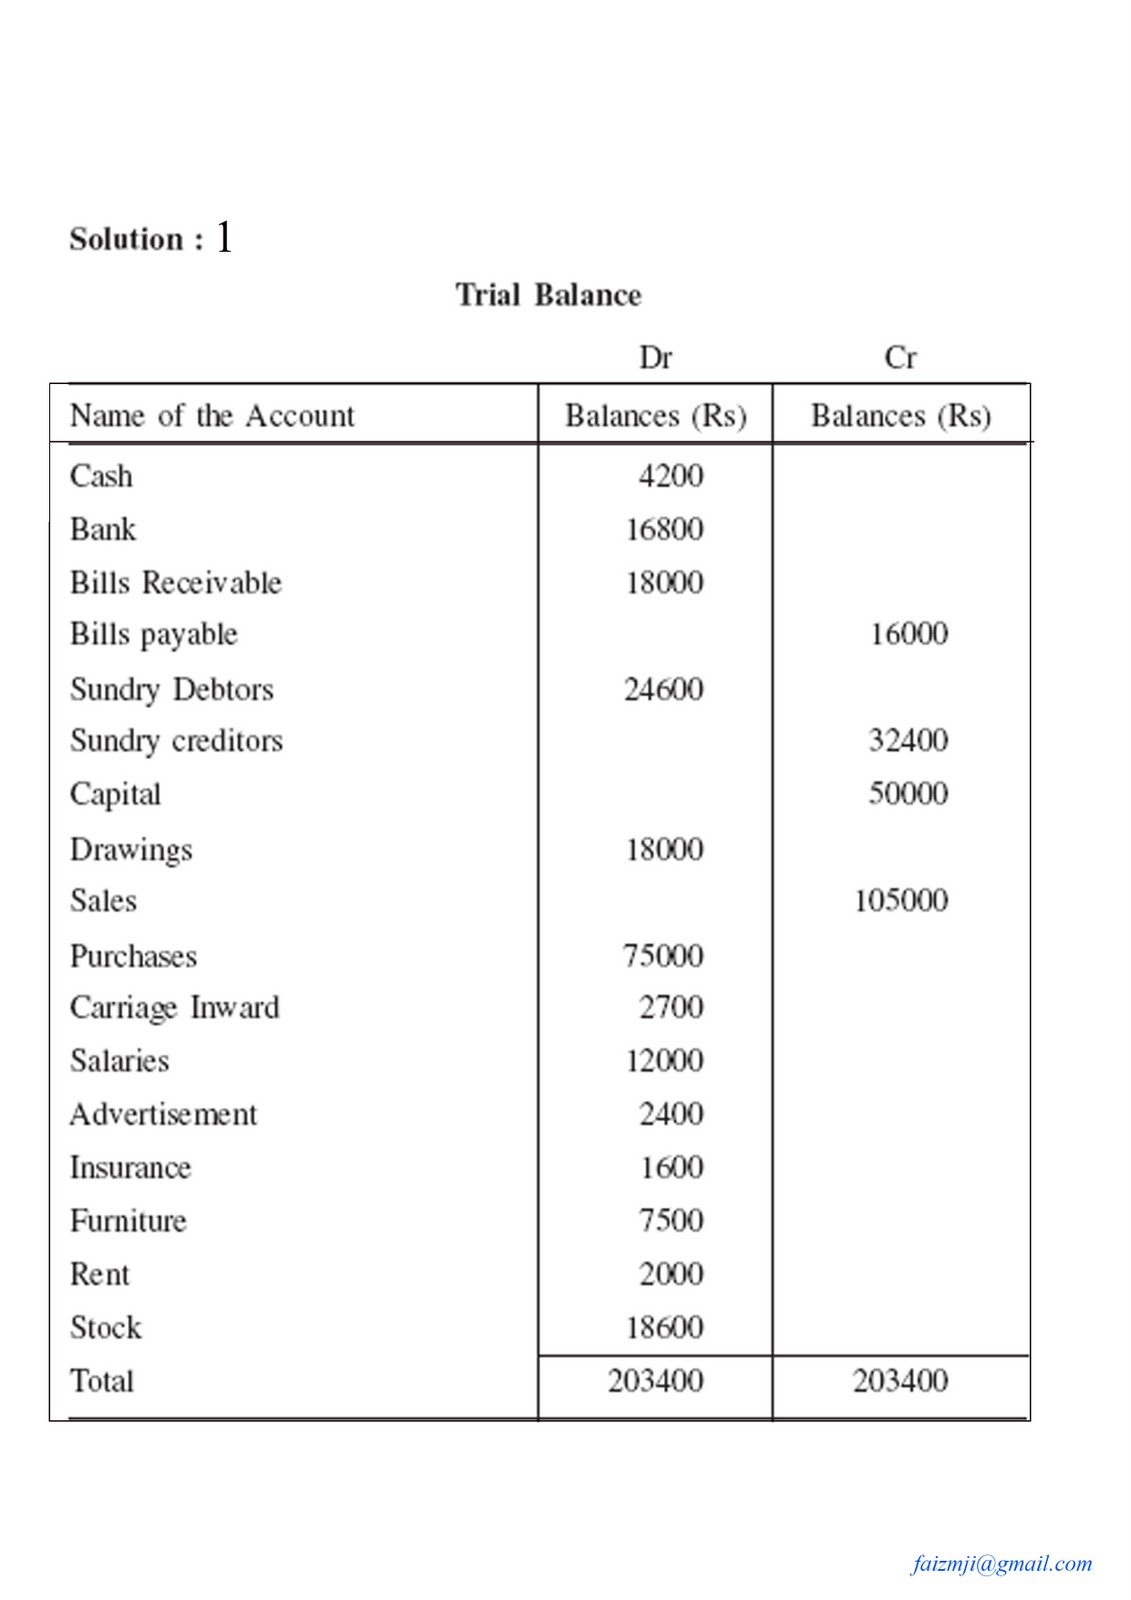 the trial balance Following are some advantages and functions of trial balance 1 it presents to the businessman a consolidated list of all ledger balances 2 it is the shortest method of verifying the arithmetical accuracy of entries made in the ledger 3 if the total of debit side/column is equal to the total of credit side/column, the trial balance.